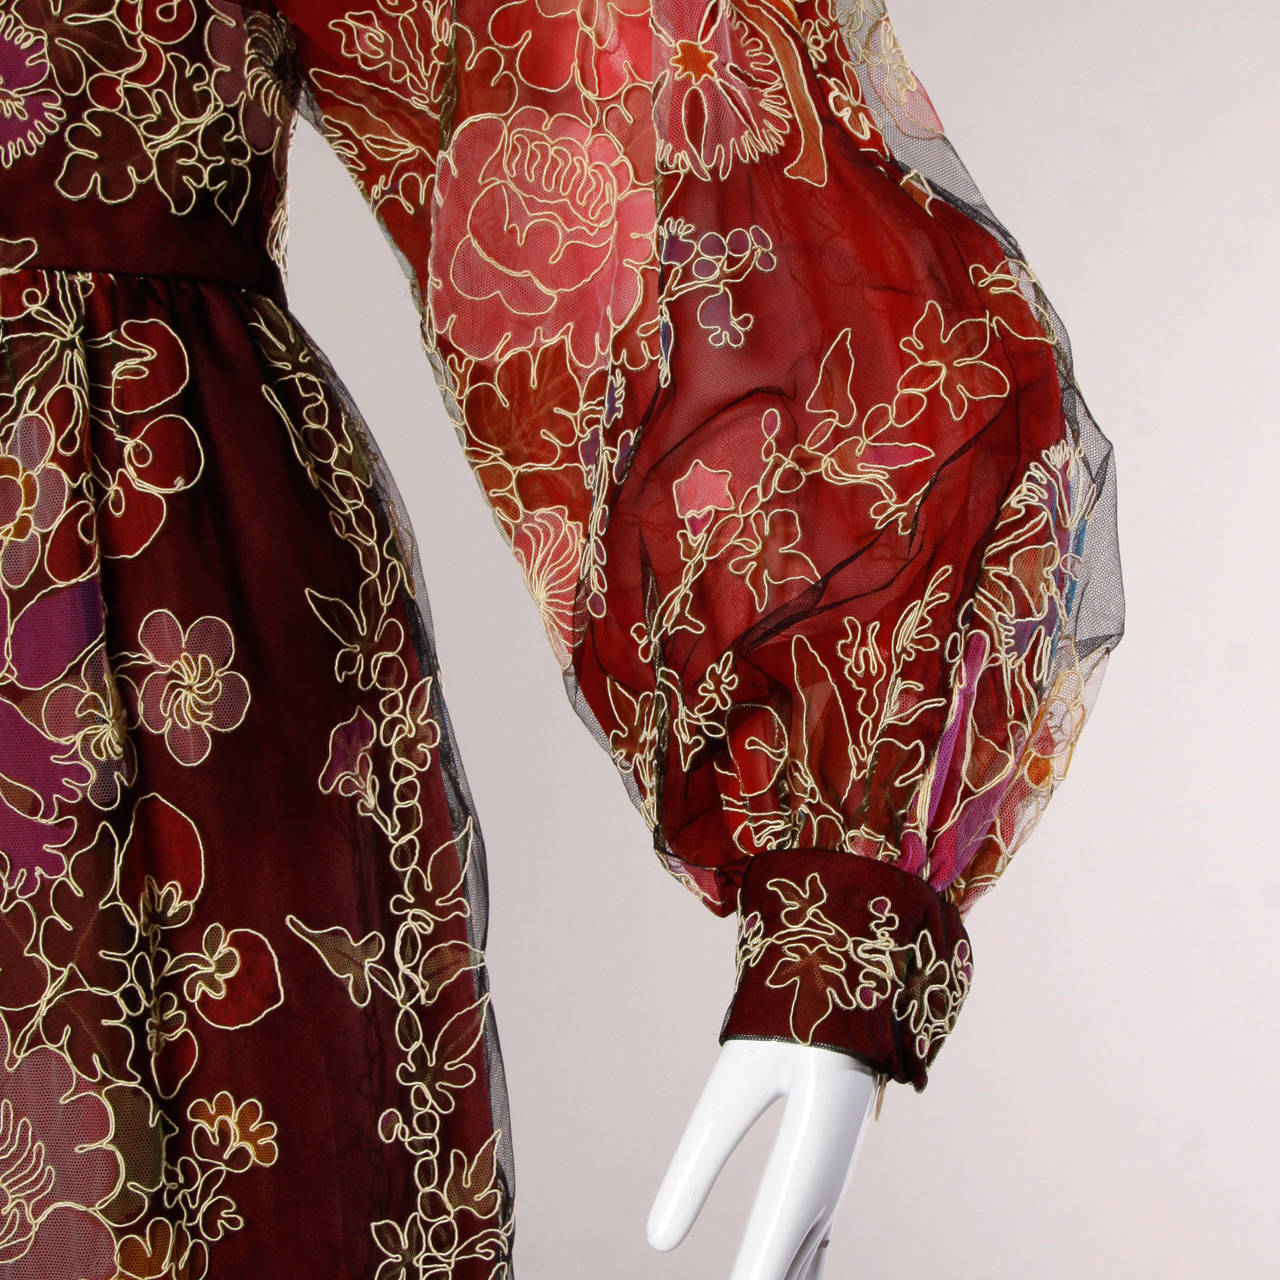 Donald Brooks Unworn Vintage 1970s Hand Painted Tulle Embroidered Dress For Sale 3